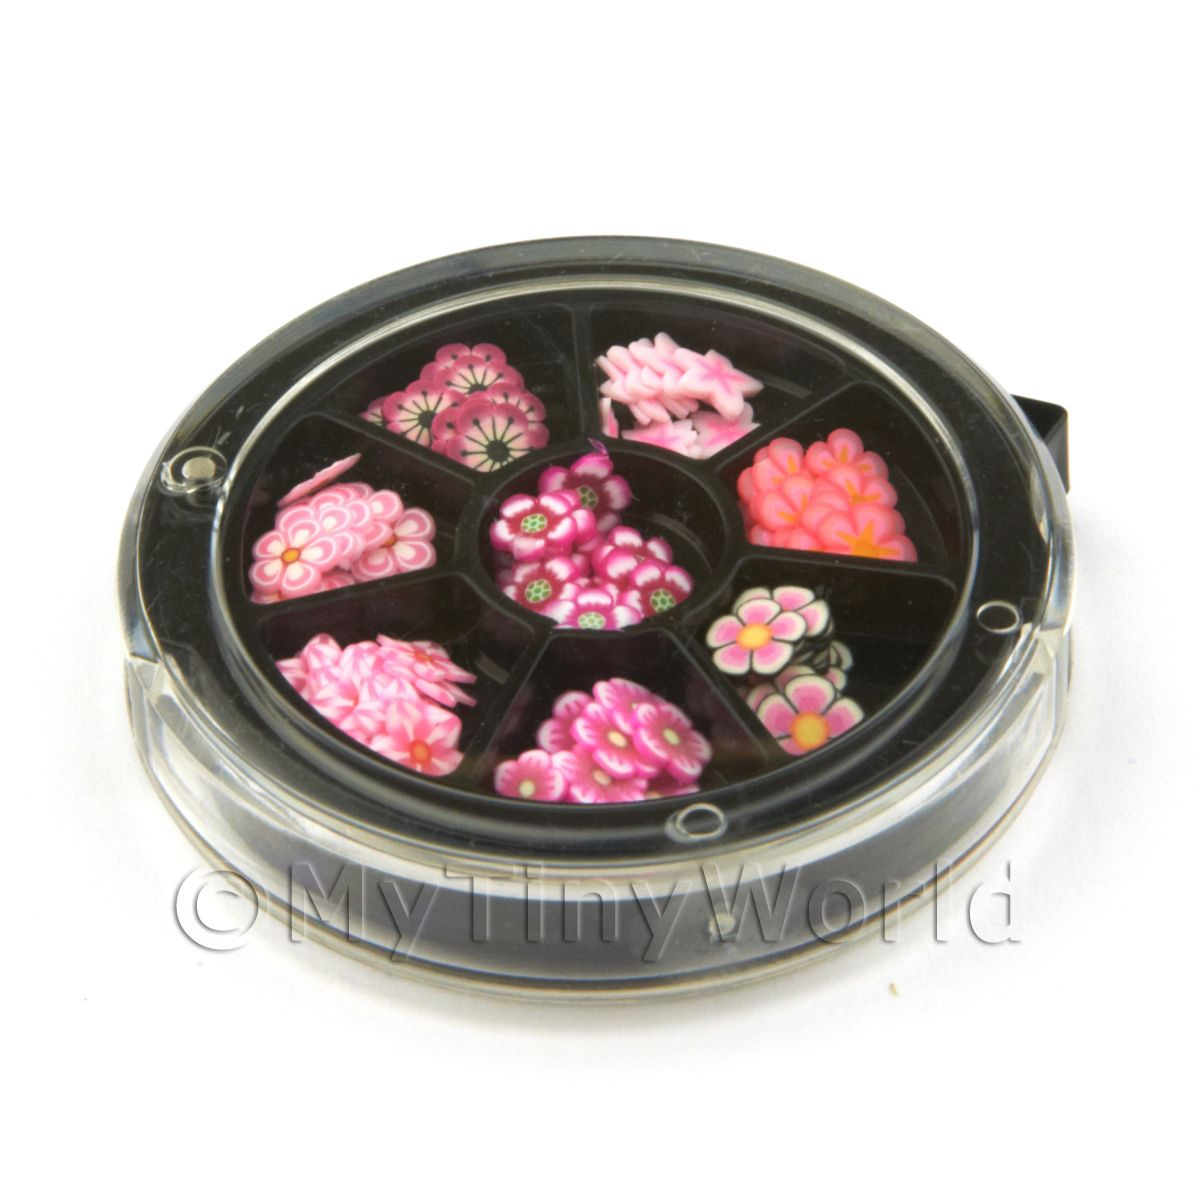 80 Assorted Nail Art Pink Flower Slices In a Wheel